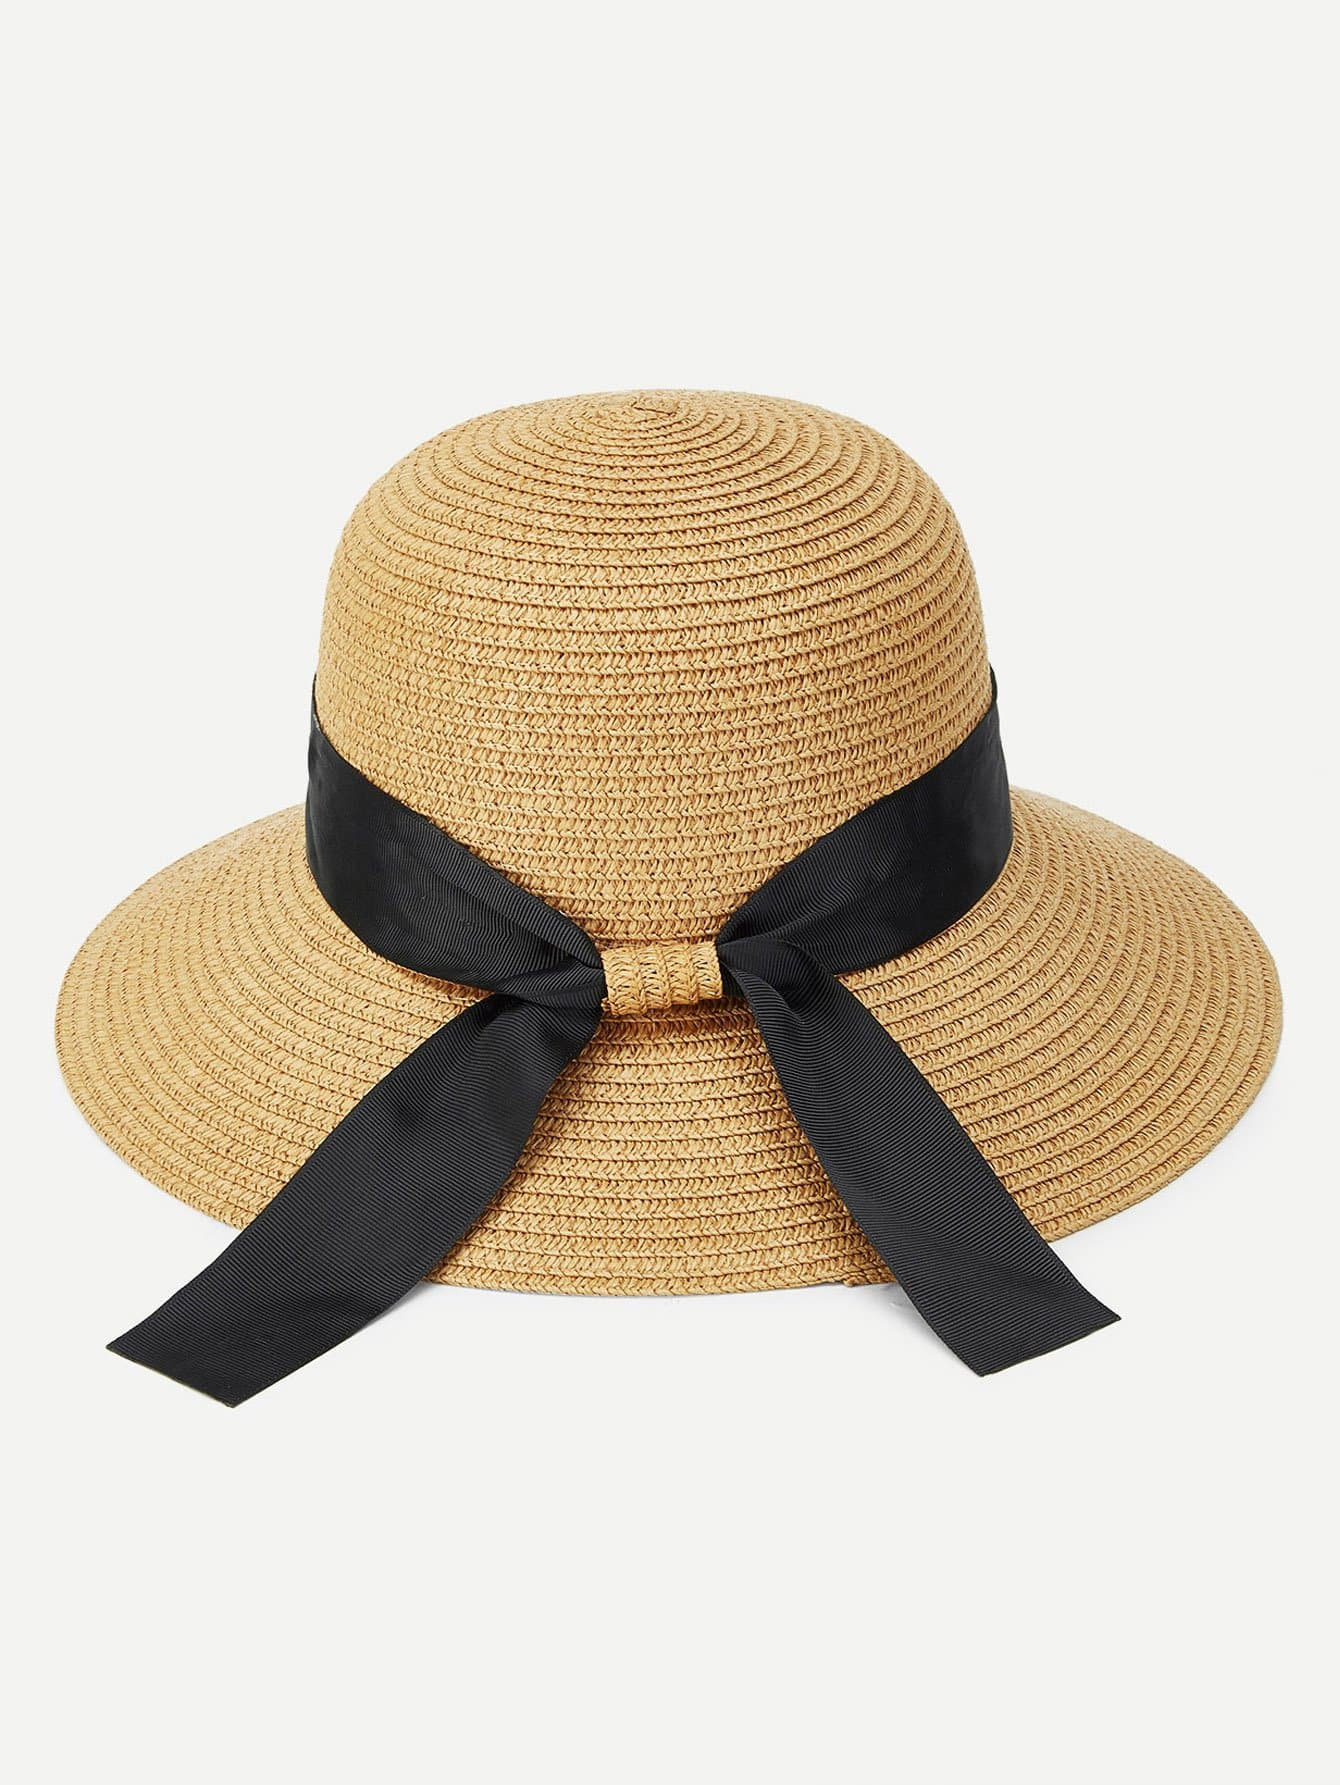 Knot Band Straw Hat stetson men s breakers premium shantung straw hat